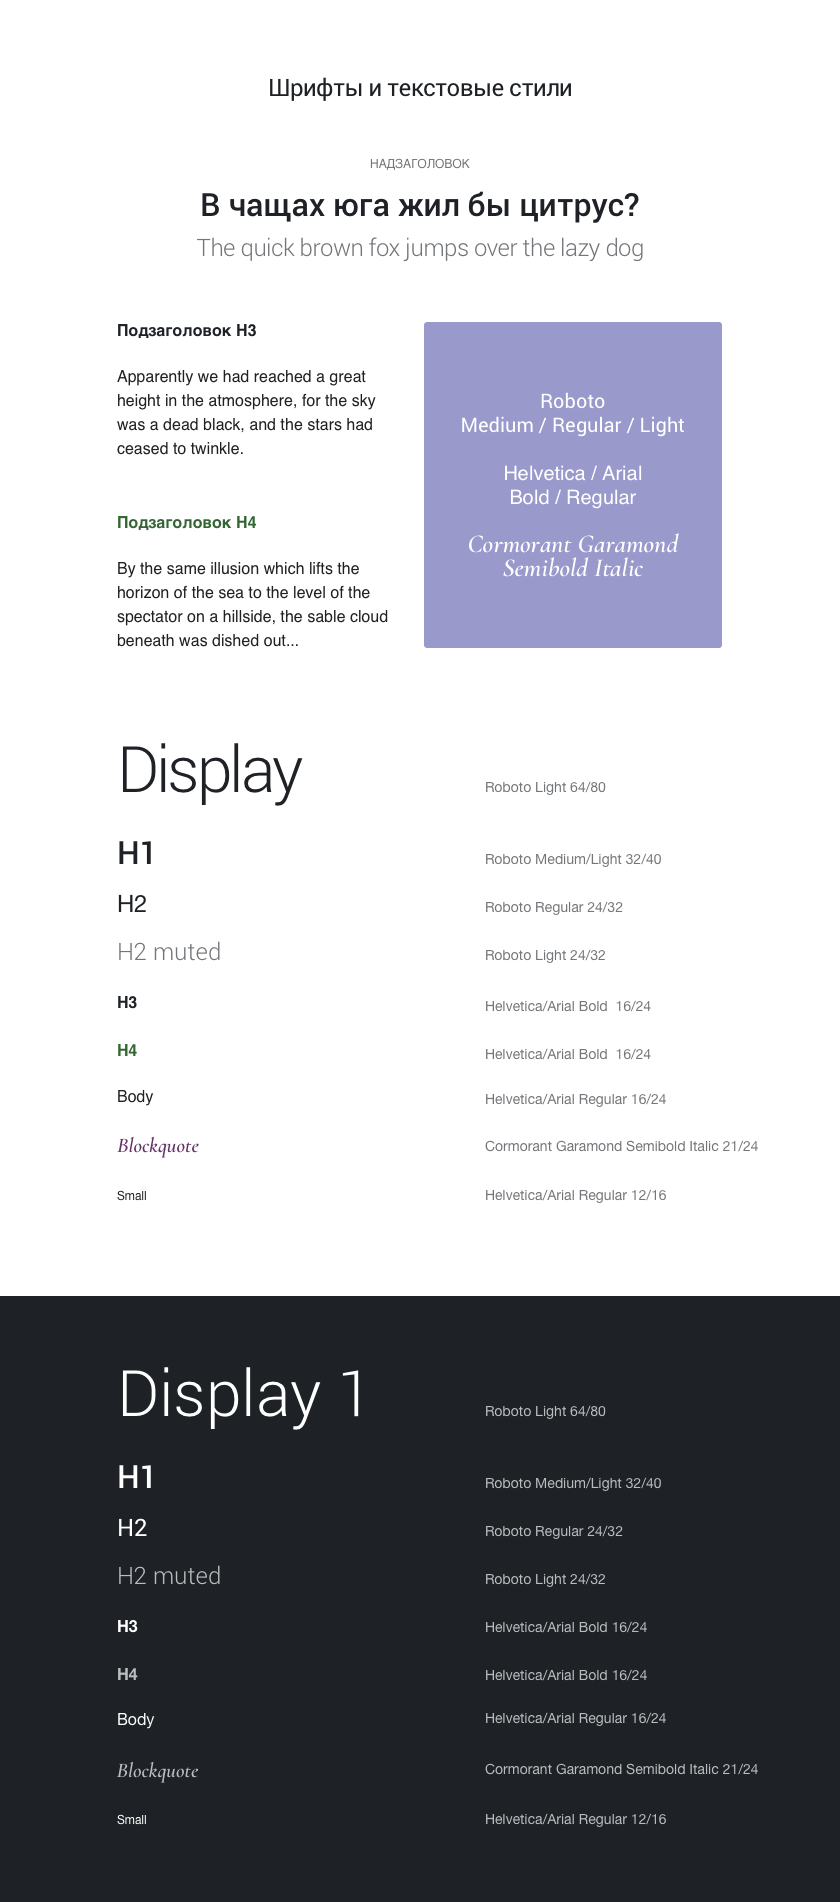 Polylog PR Agency. The typography system